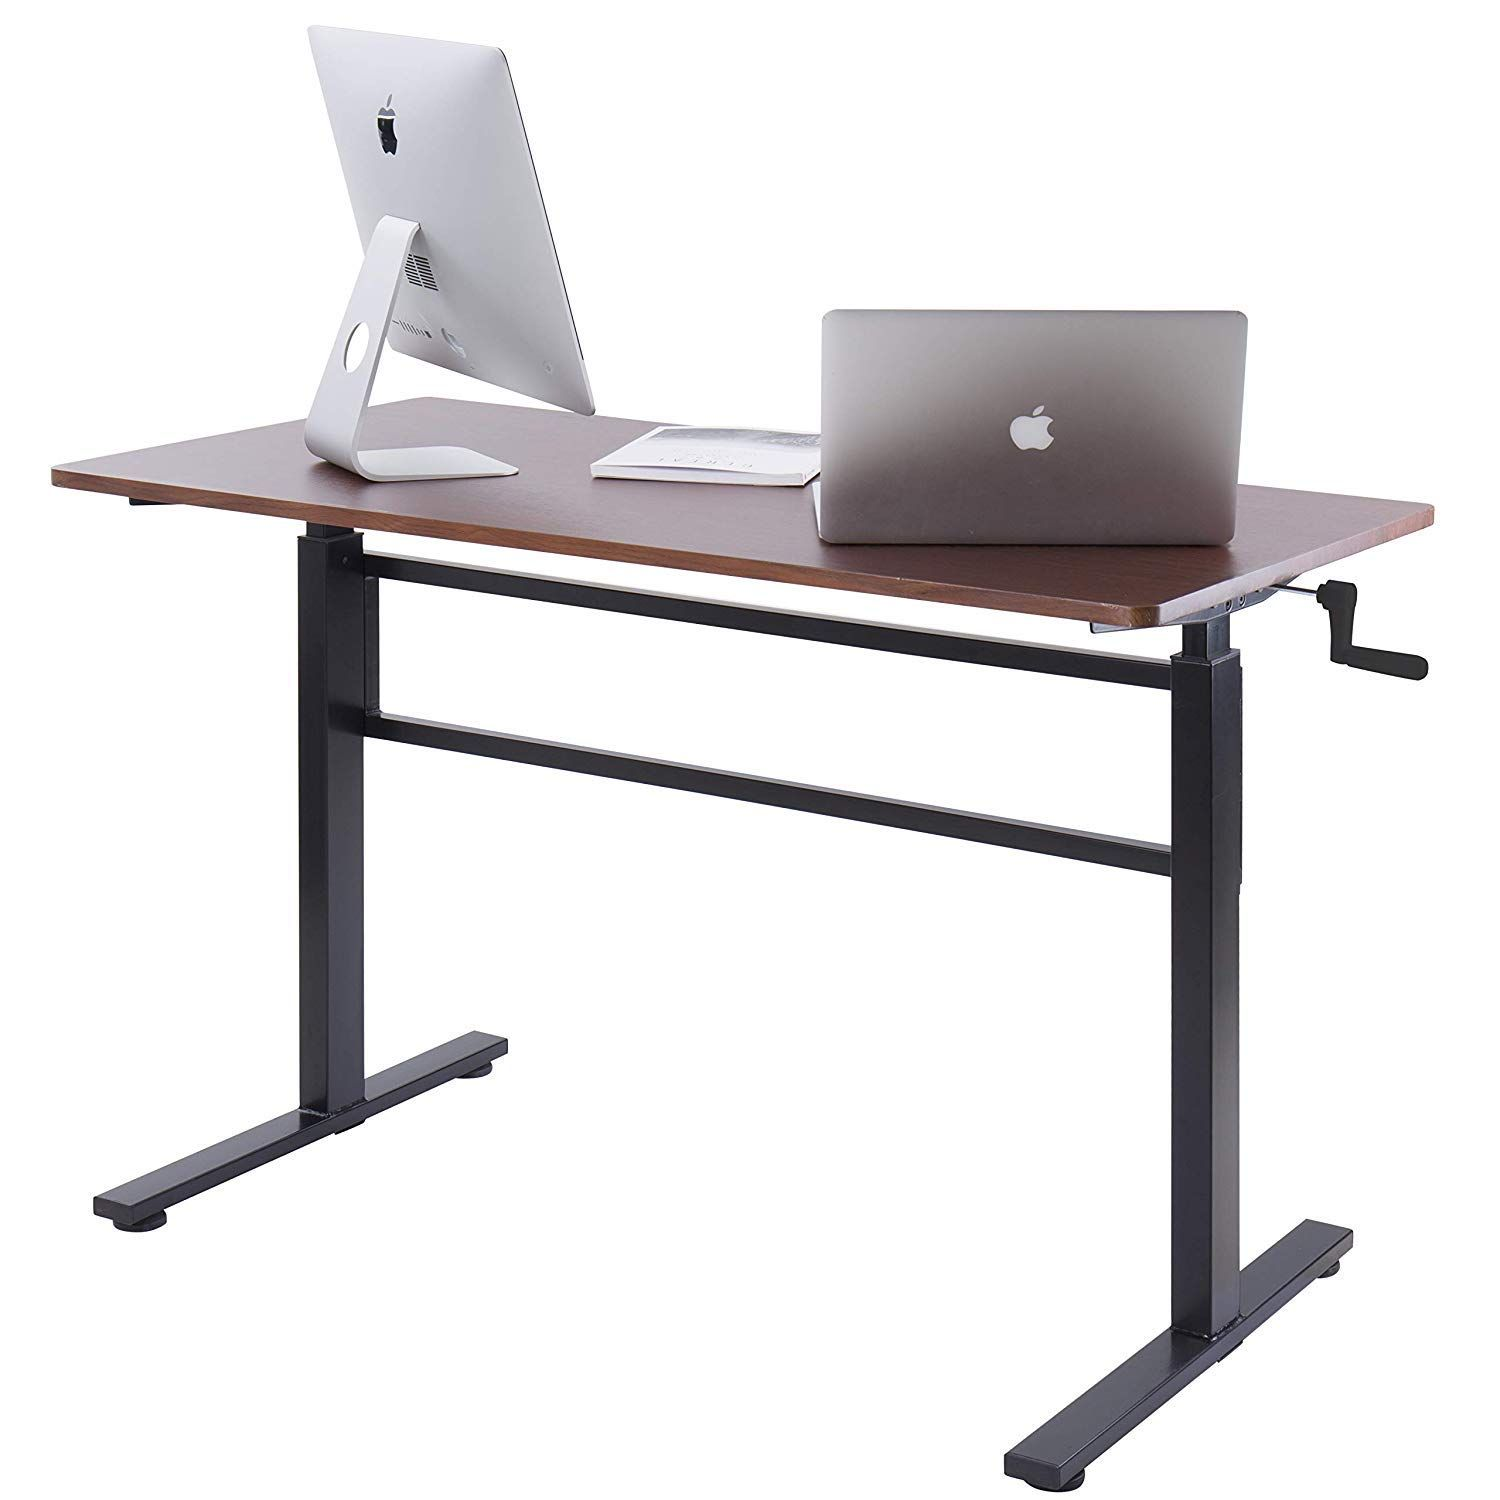 Unicoo crank adjustable height standing desk adjustable sit to